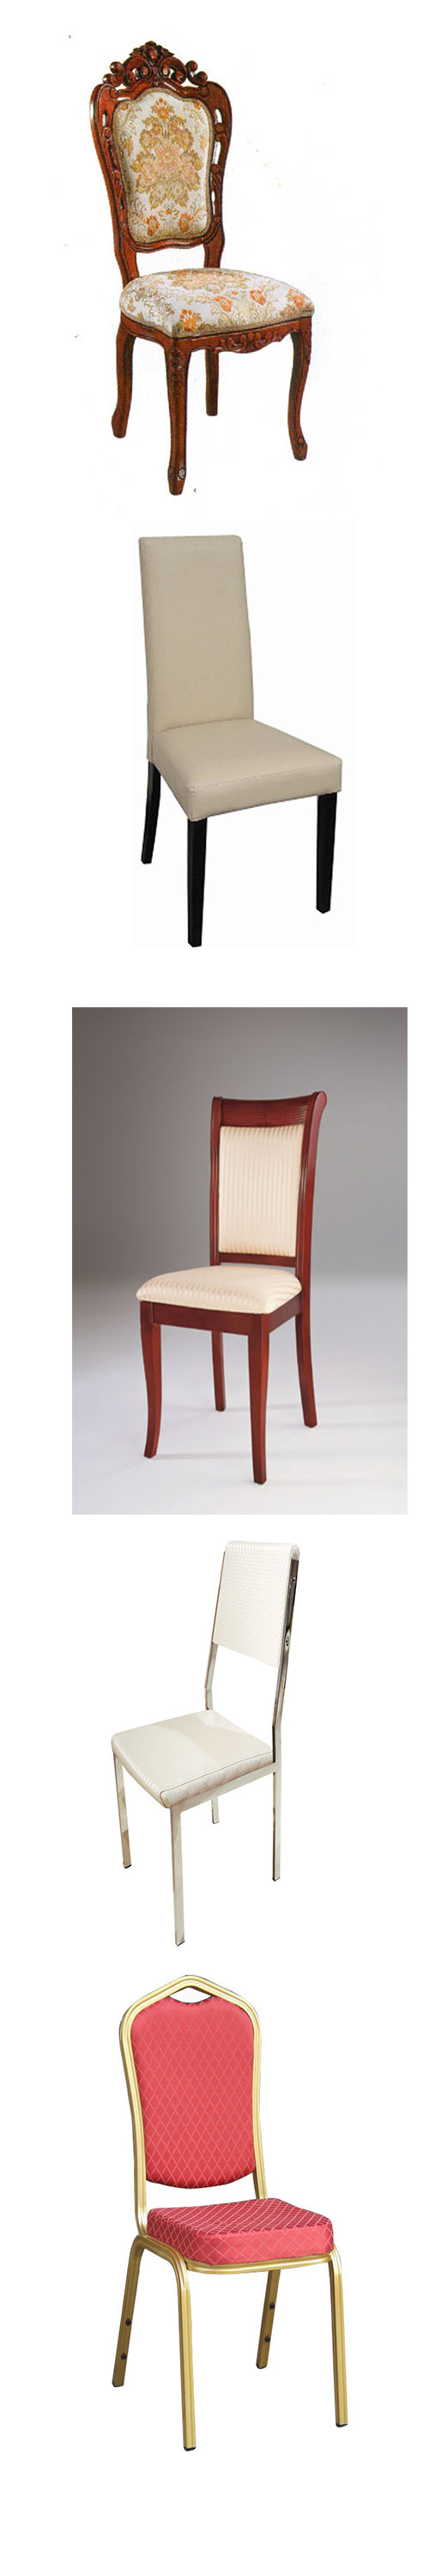 China European Style Deluxe Wooden Dining Chair Furniture  : European Style Deluxe Wooden Dining Chair Furniture from lx-hotelfurniture.en.made-in-china.com size 500 x 3000 jpeg 169kB